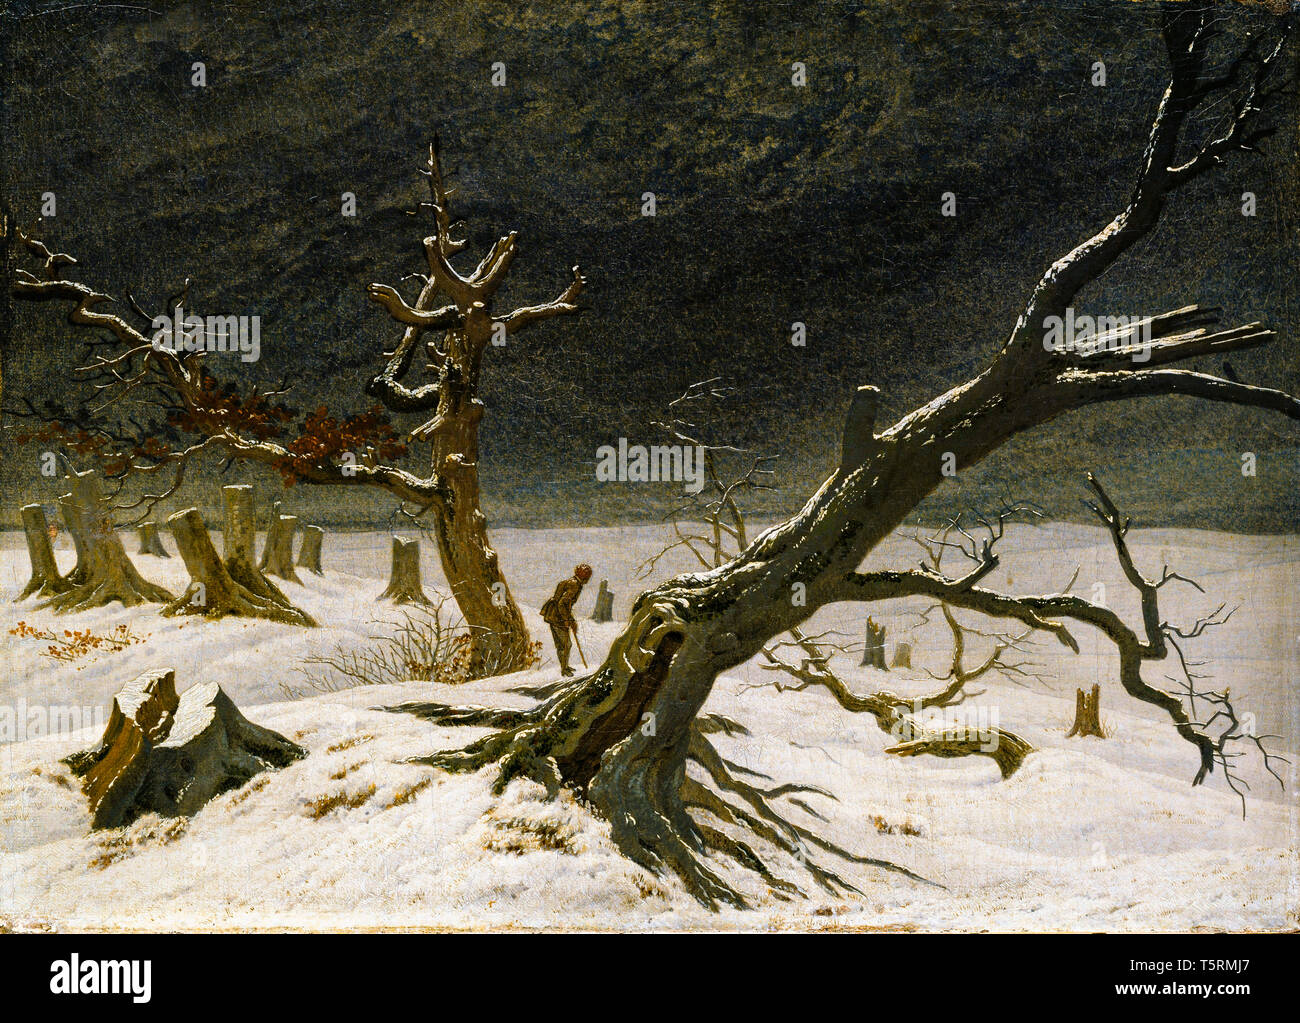 Caspar David Friedrich Stock Photos & Caspar David Friedrich